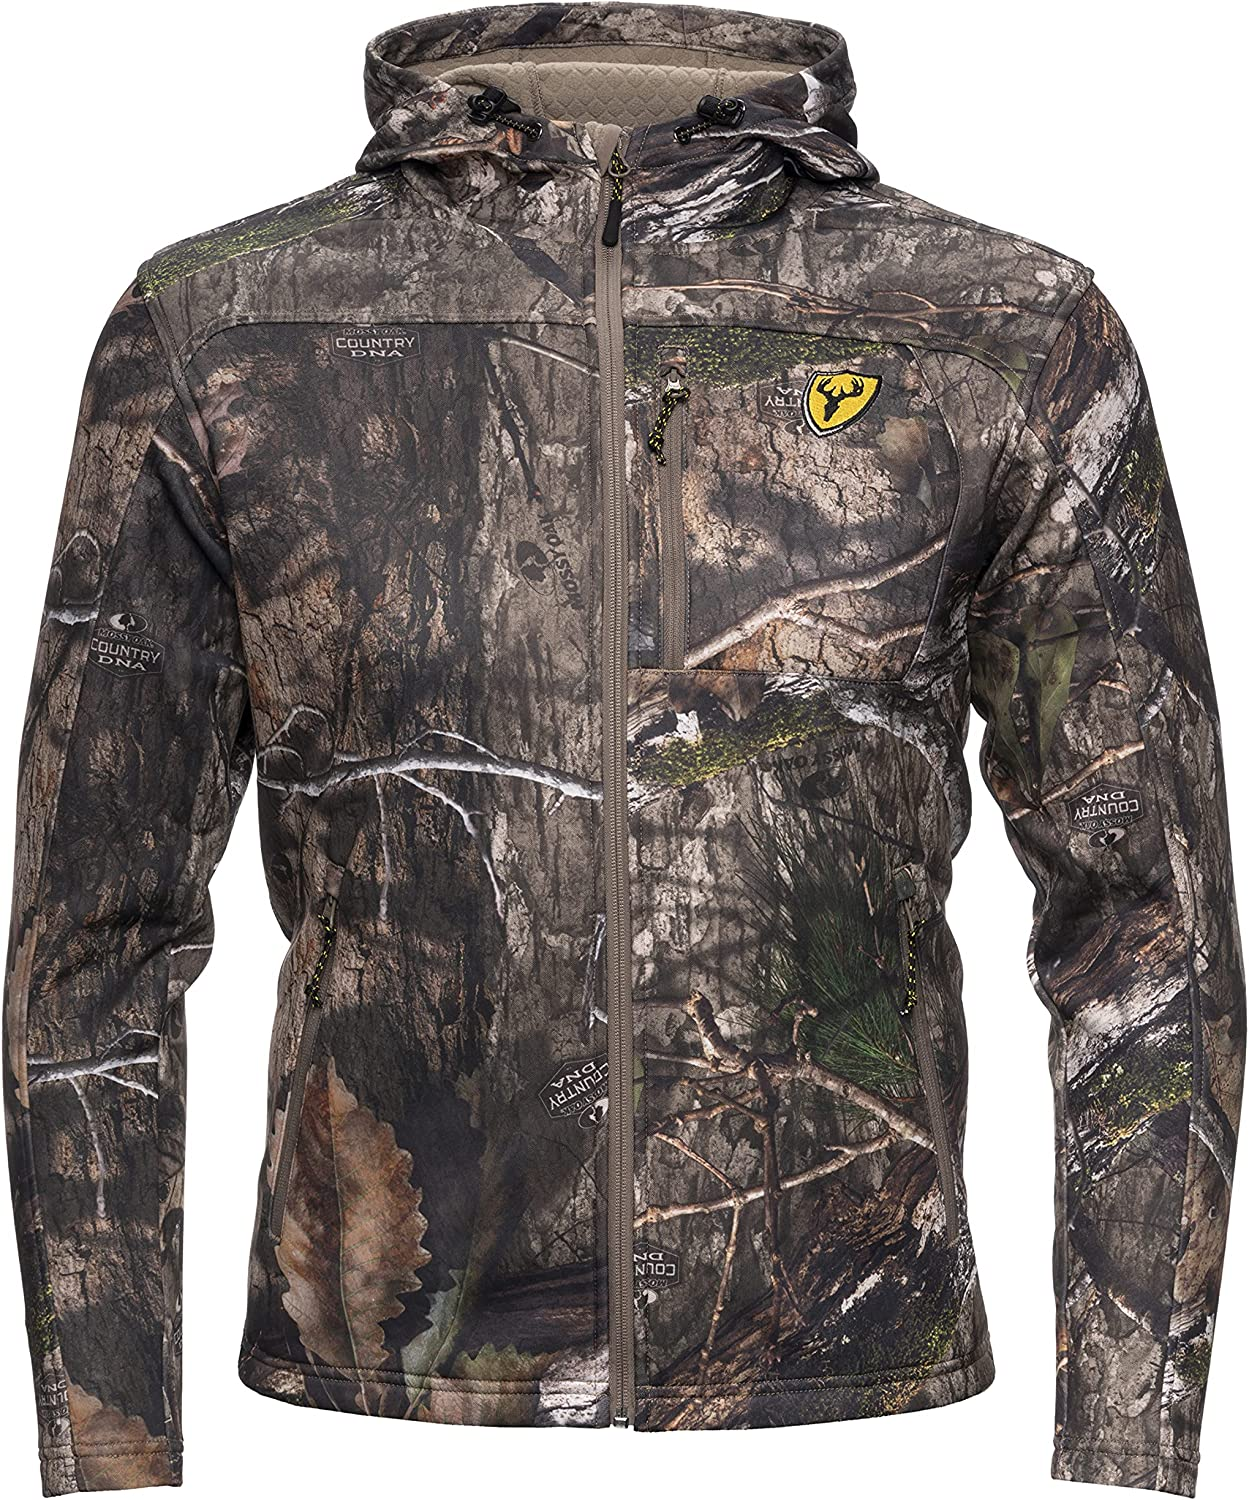 Scent Blocker Shield Series low-pricing Silentec Max 68% OFF Clothe Hunting Jacket Camo